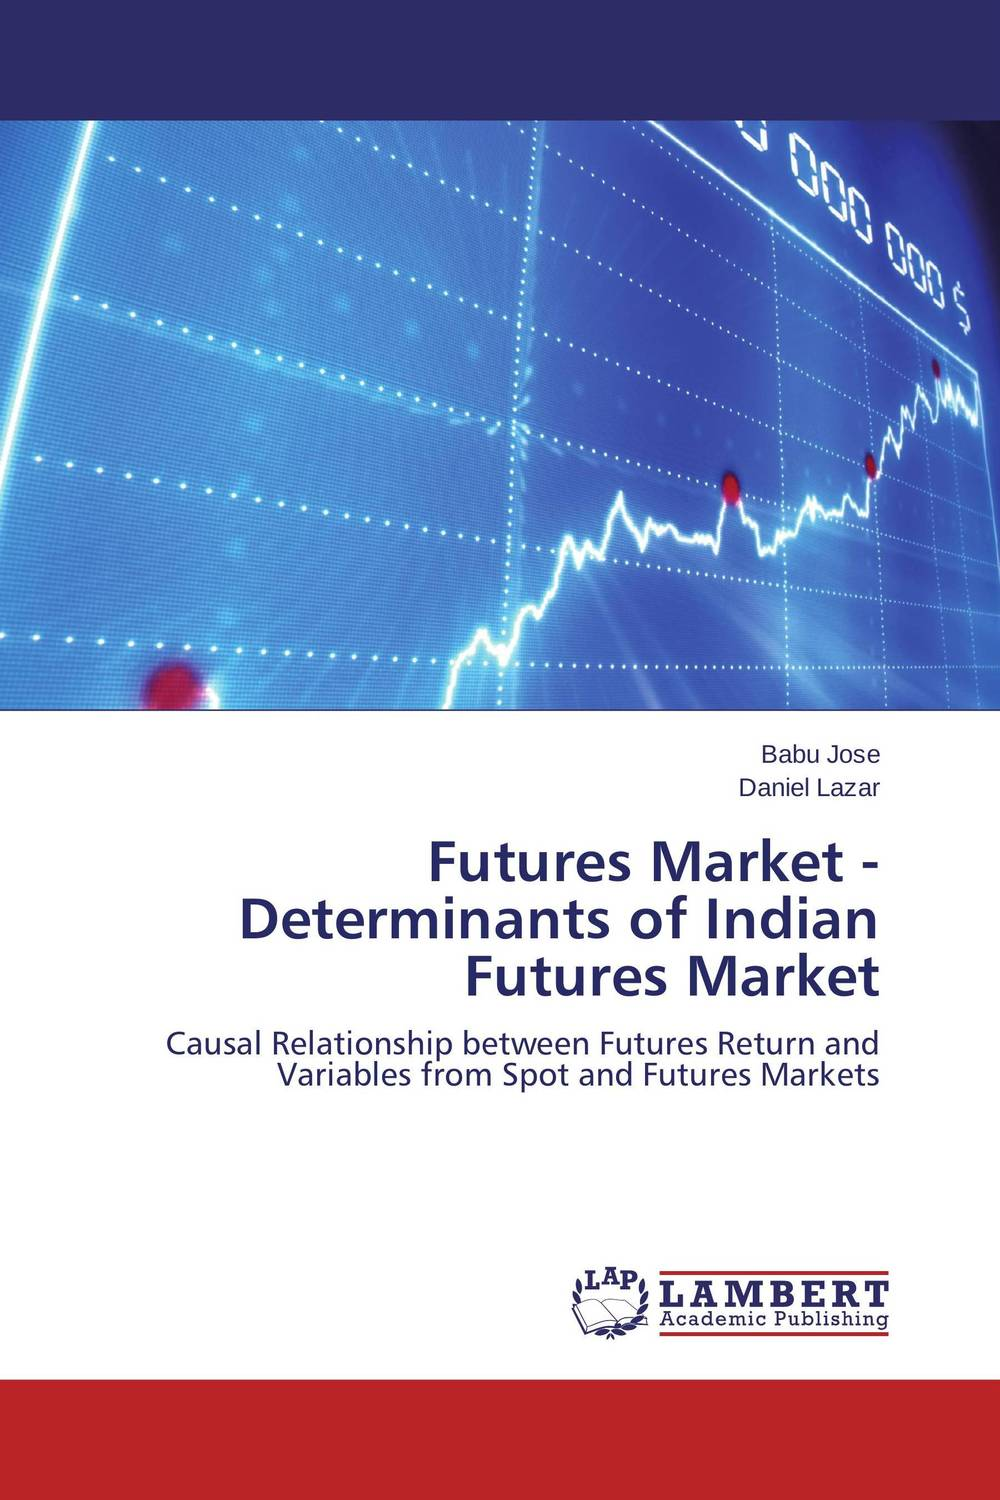 Futures Market - Determinants of Indian Futures Market b p r d hell on earth volume 6 the return of the master